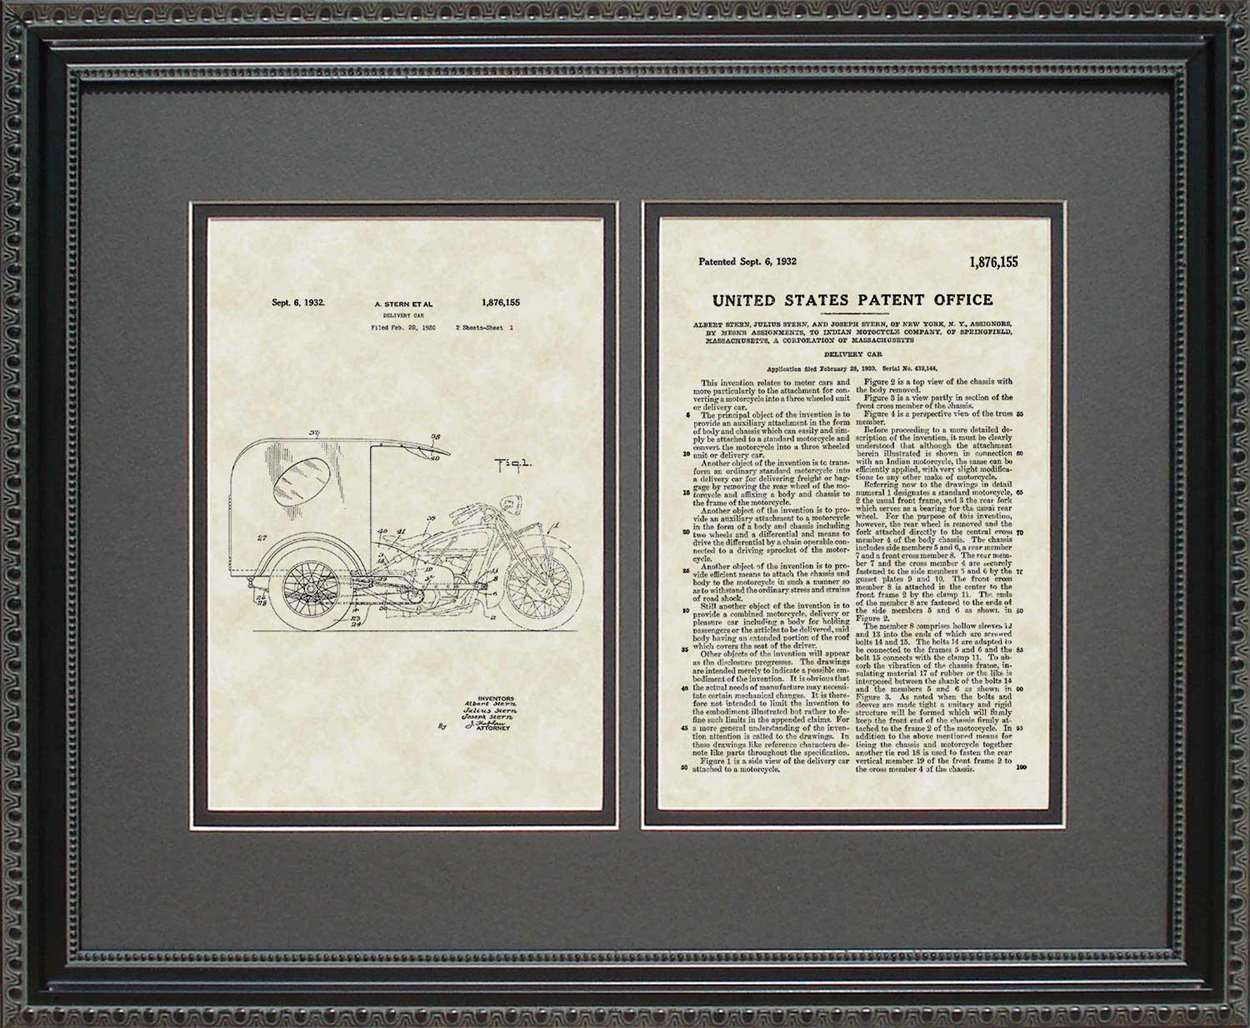 3-Wheel Delivery Car Patent, Art & Copy, Stern, 1932, 16x20